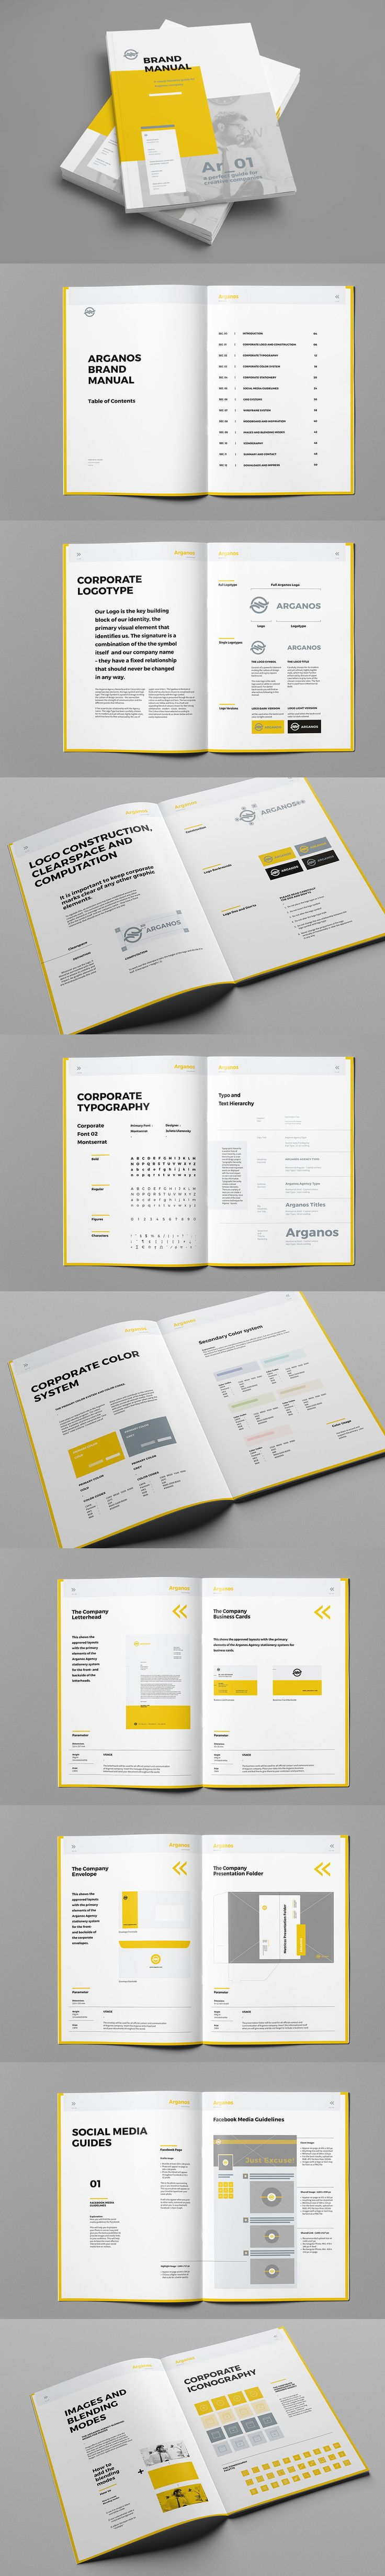 Brand Manual Template InDesign INDD - 48 Pages, A4 & US Letter size